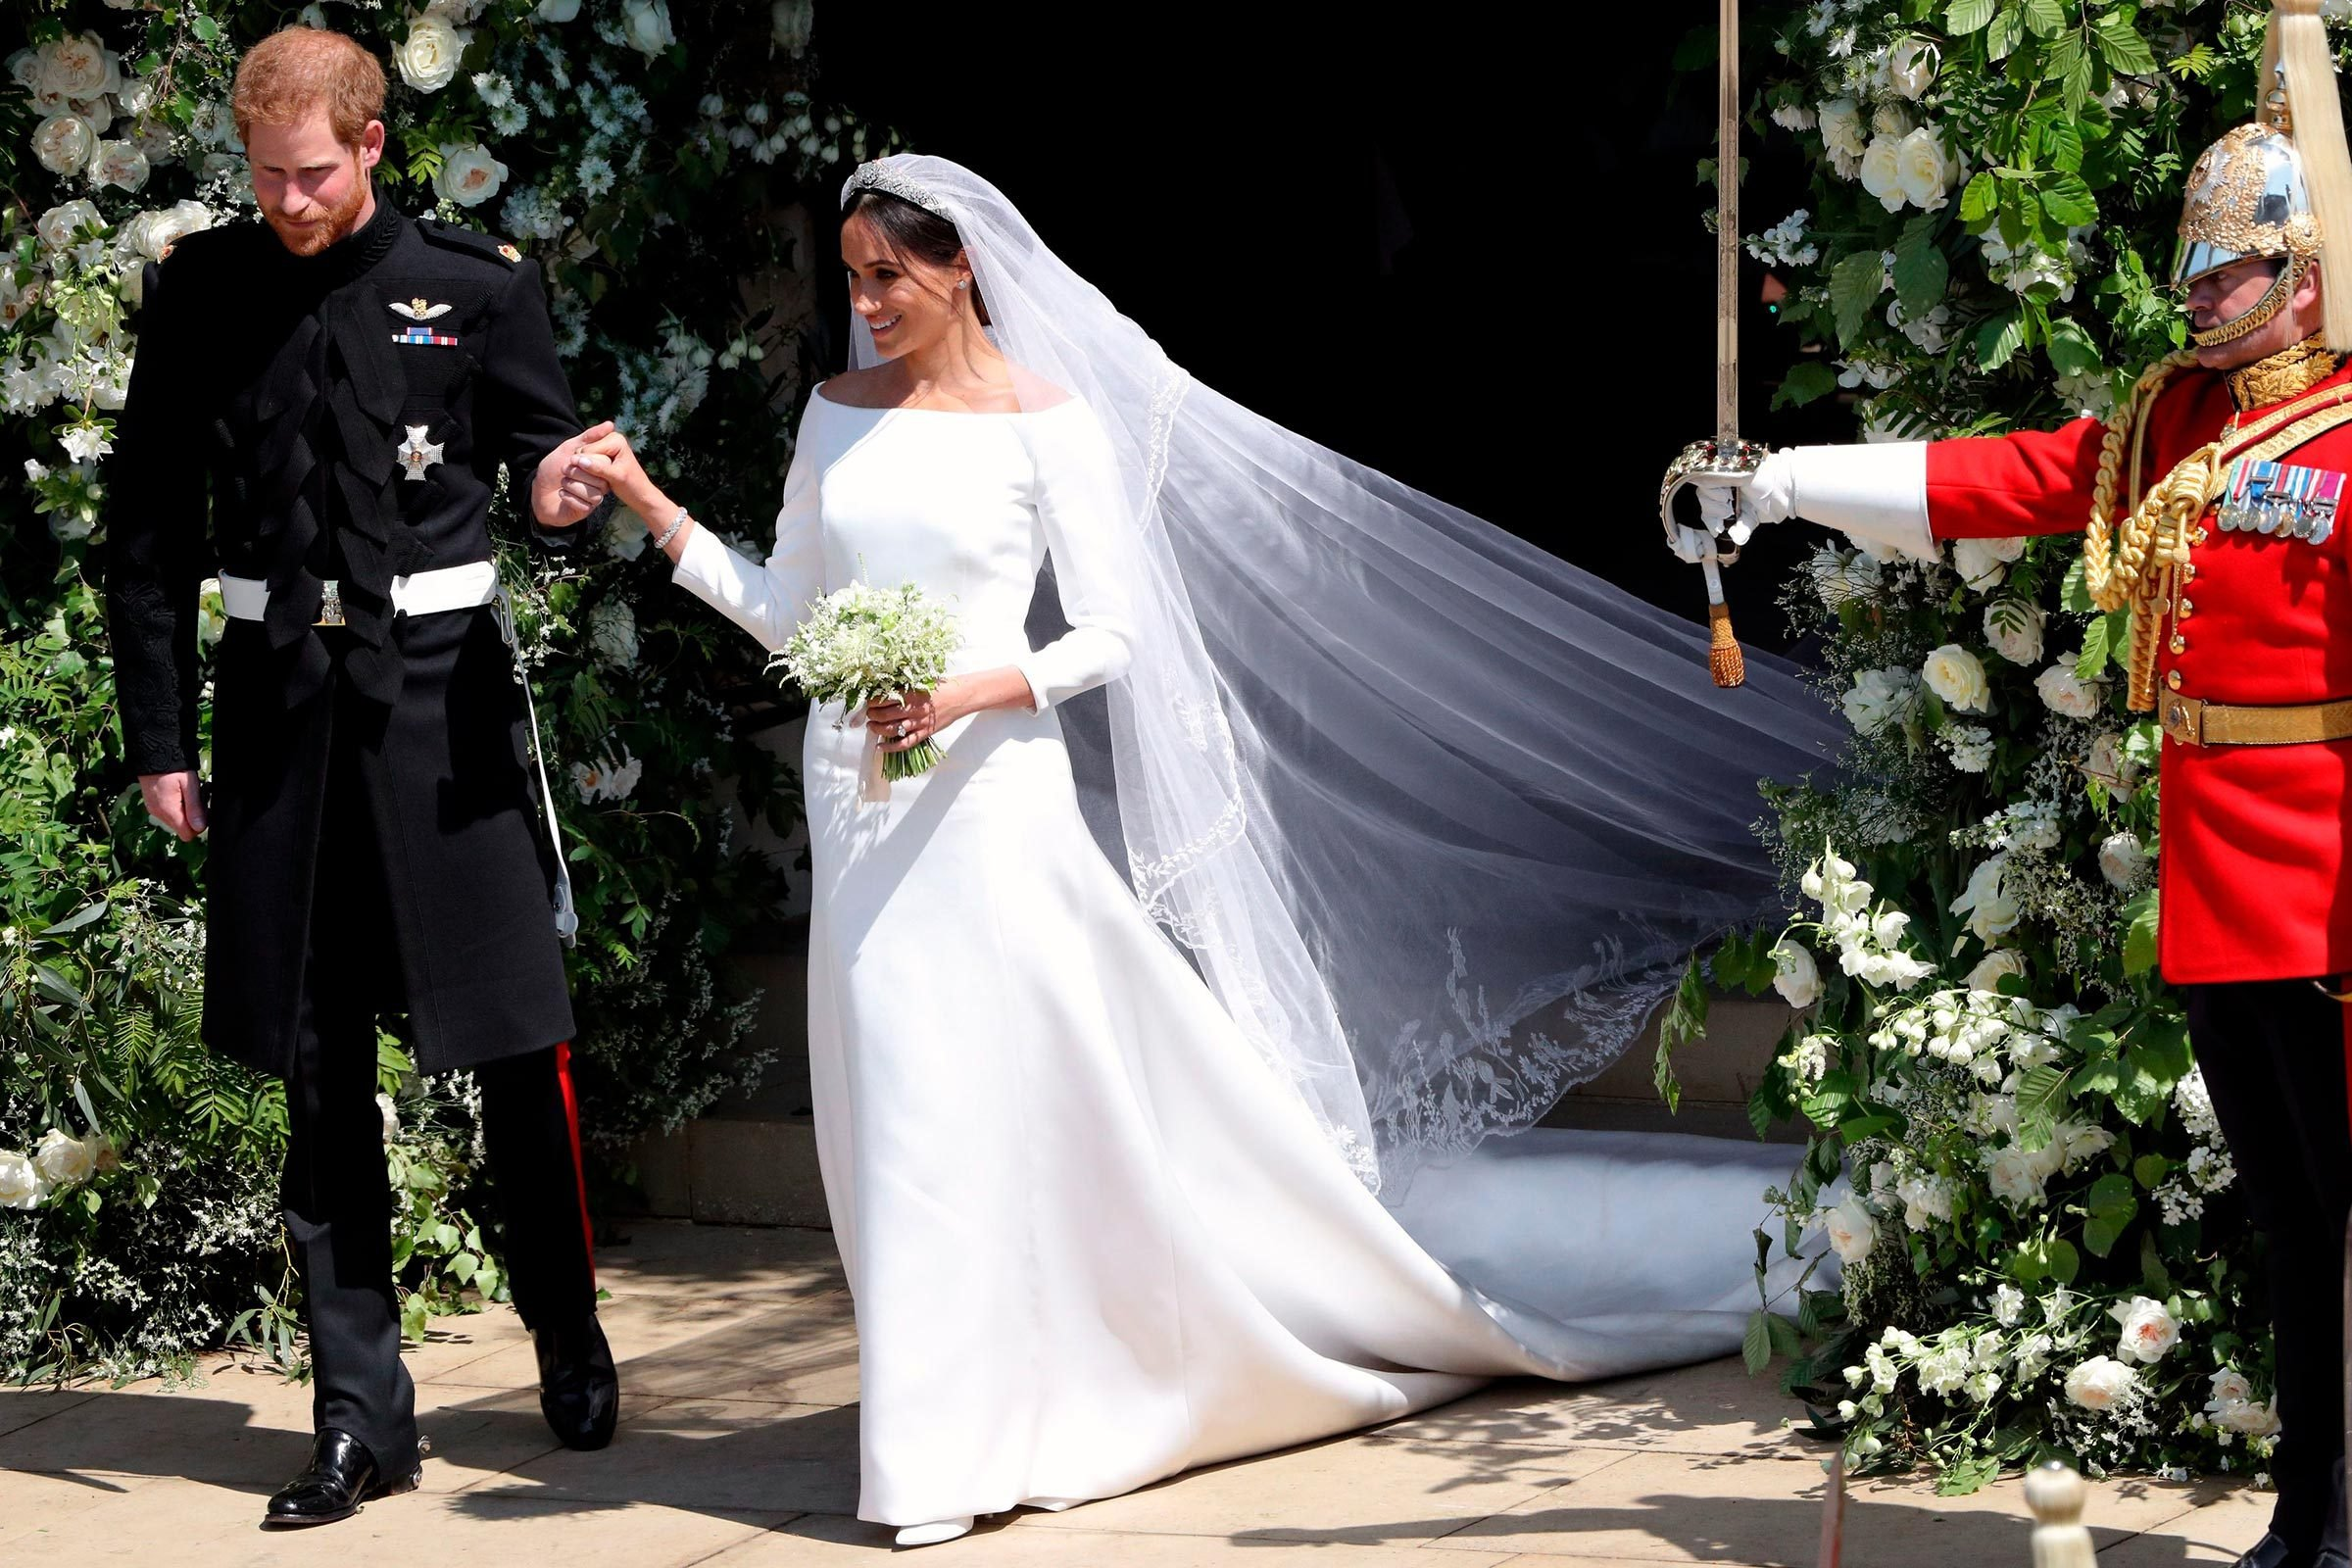 Meghan Markle Wedding Pictures.Details You Never Noticed About Meghan Markle S Wedding Dress